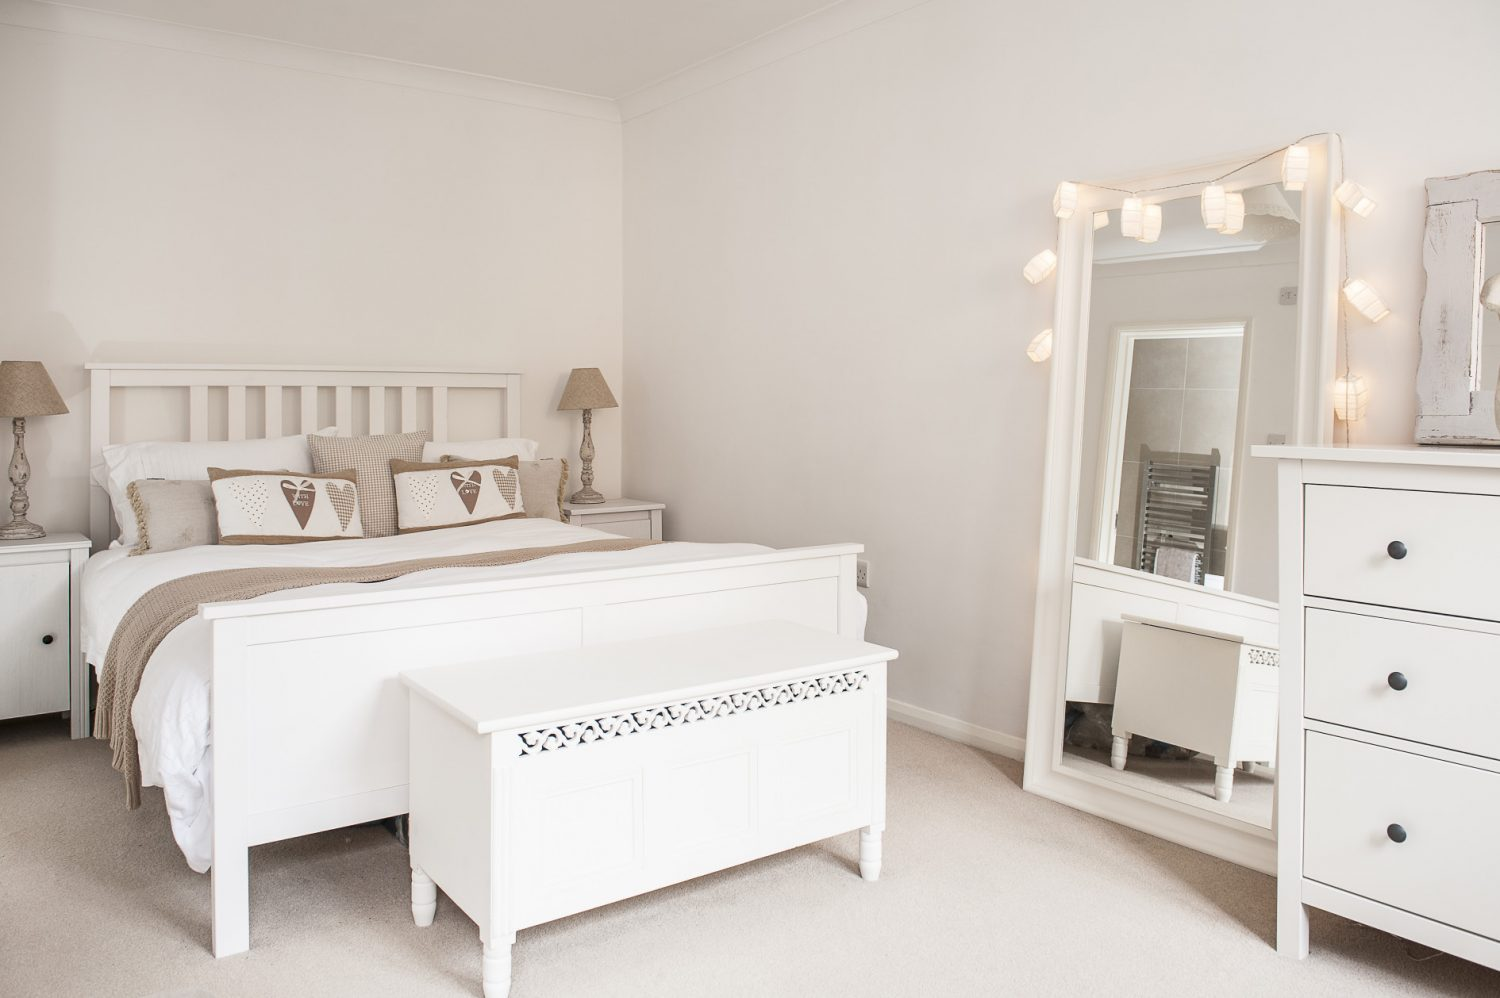 Situated on the ground floor, the master bedroom is a cool white space dotted with soft furnishings courtesy of one of Chris's favourite shops, The White Company, plus cushions that she has crafted herself